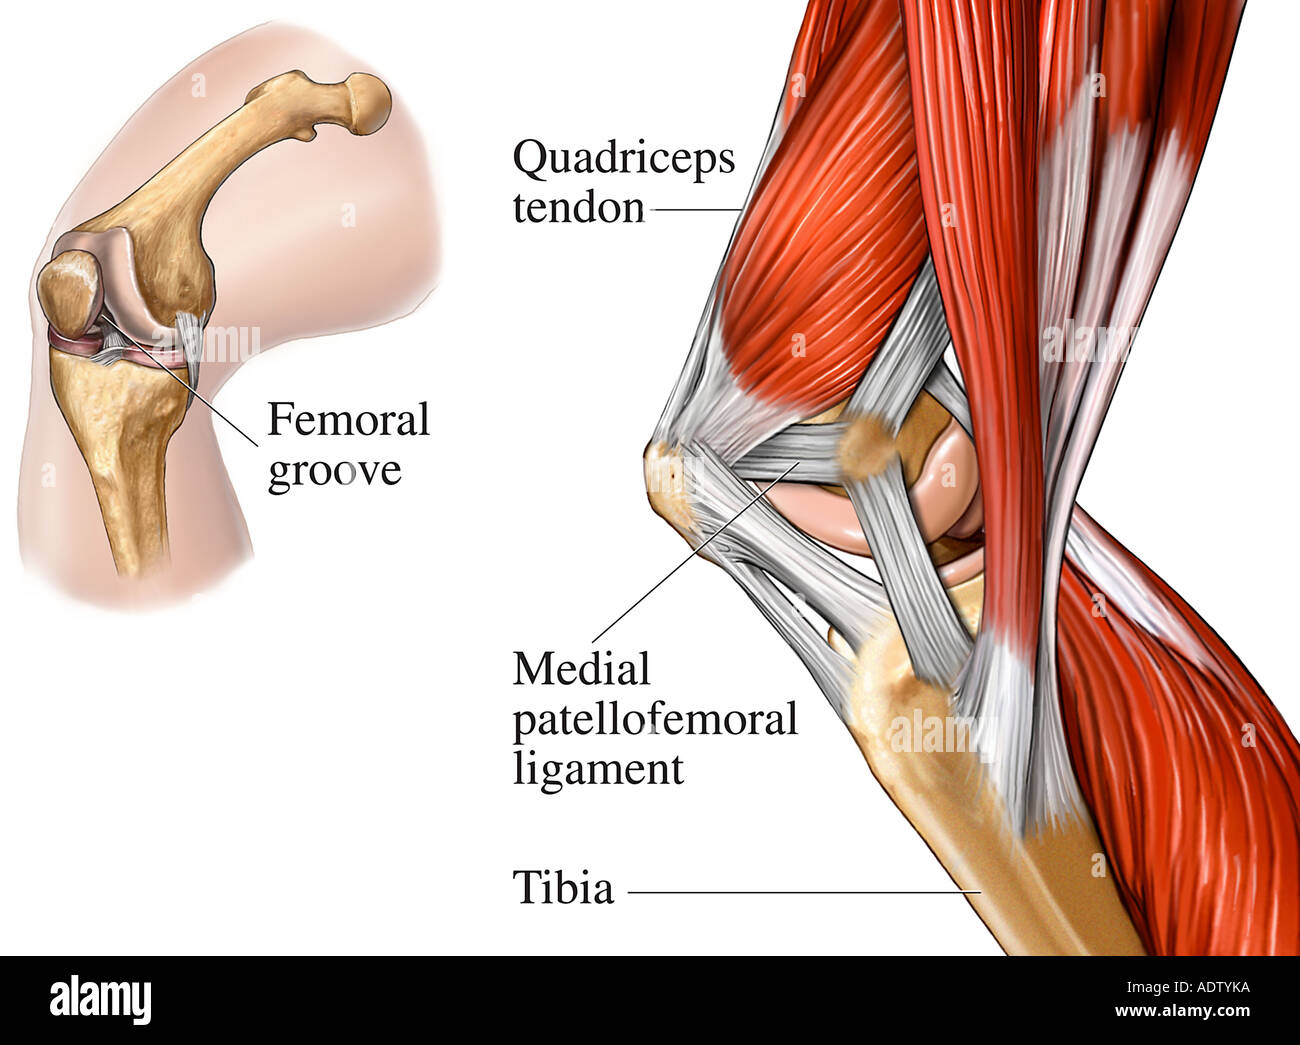 Muscles of the Knee Joint Medial View Stock Photo: 7710841 - Alamy